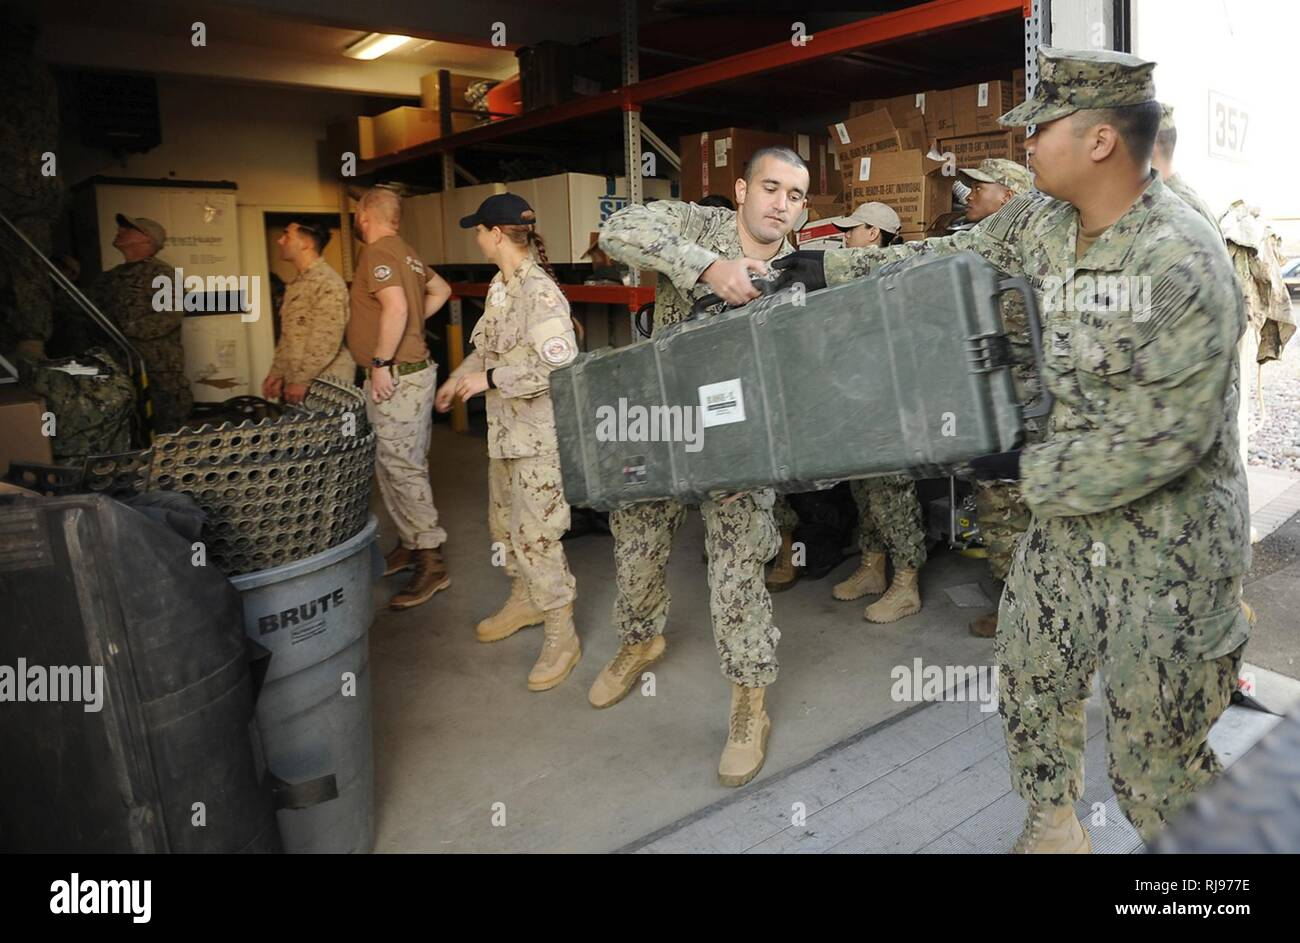 Sailors and Marines load provisions in preparation for